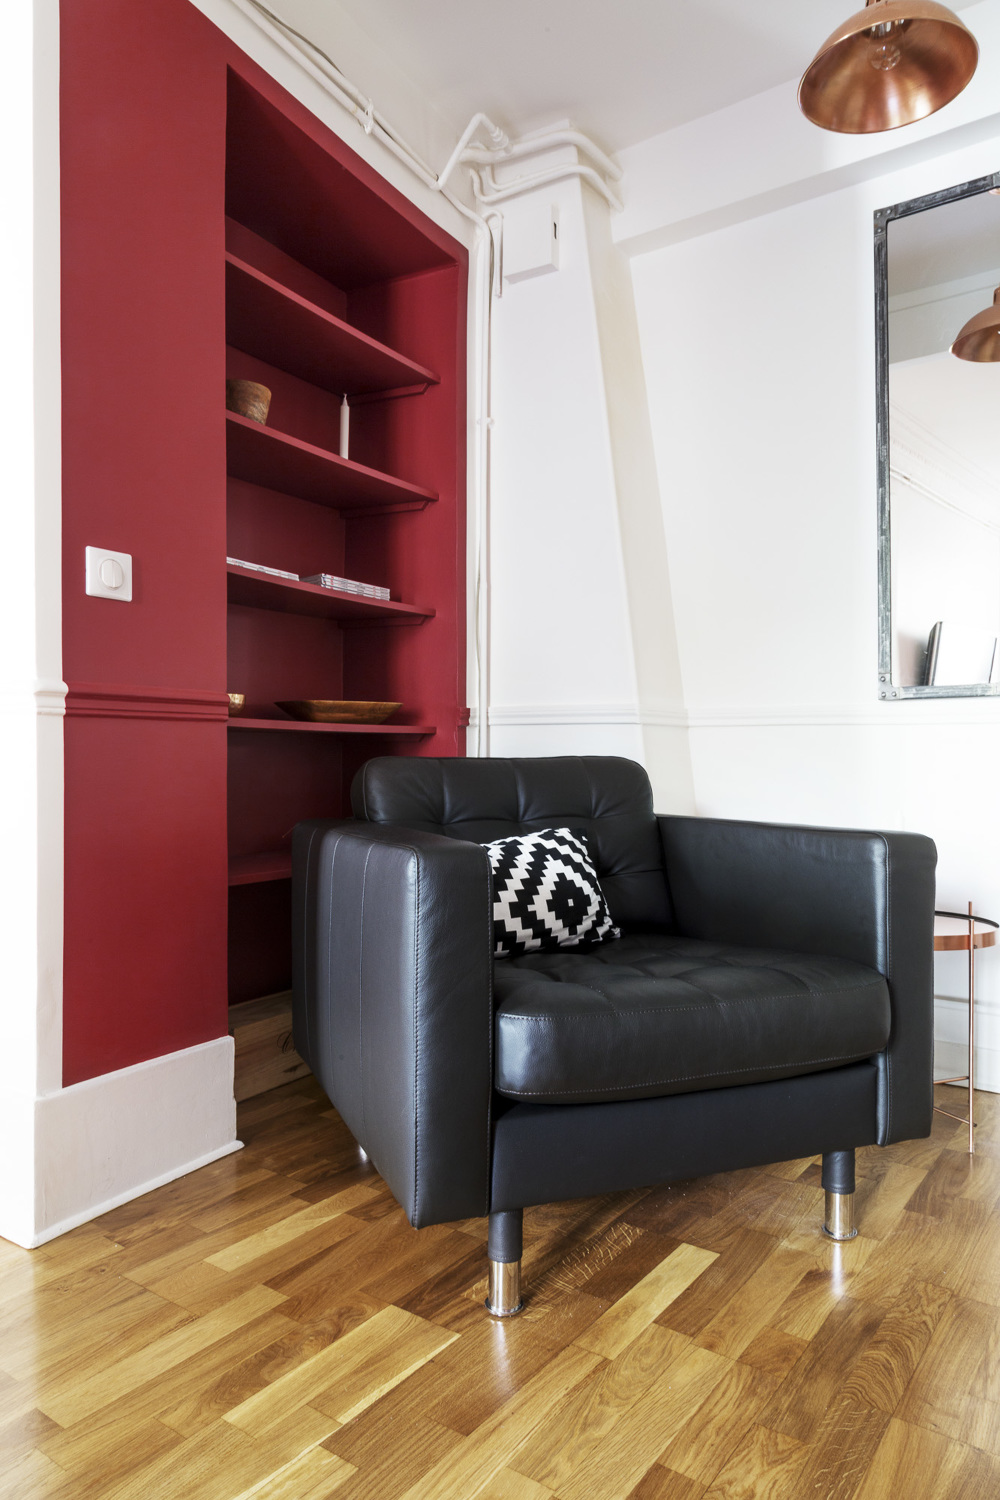 Appartement industriel chic & moderne   carole's interiors